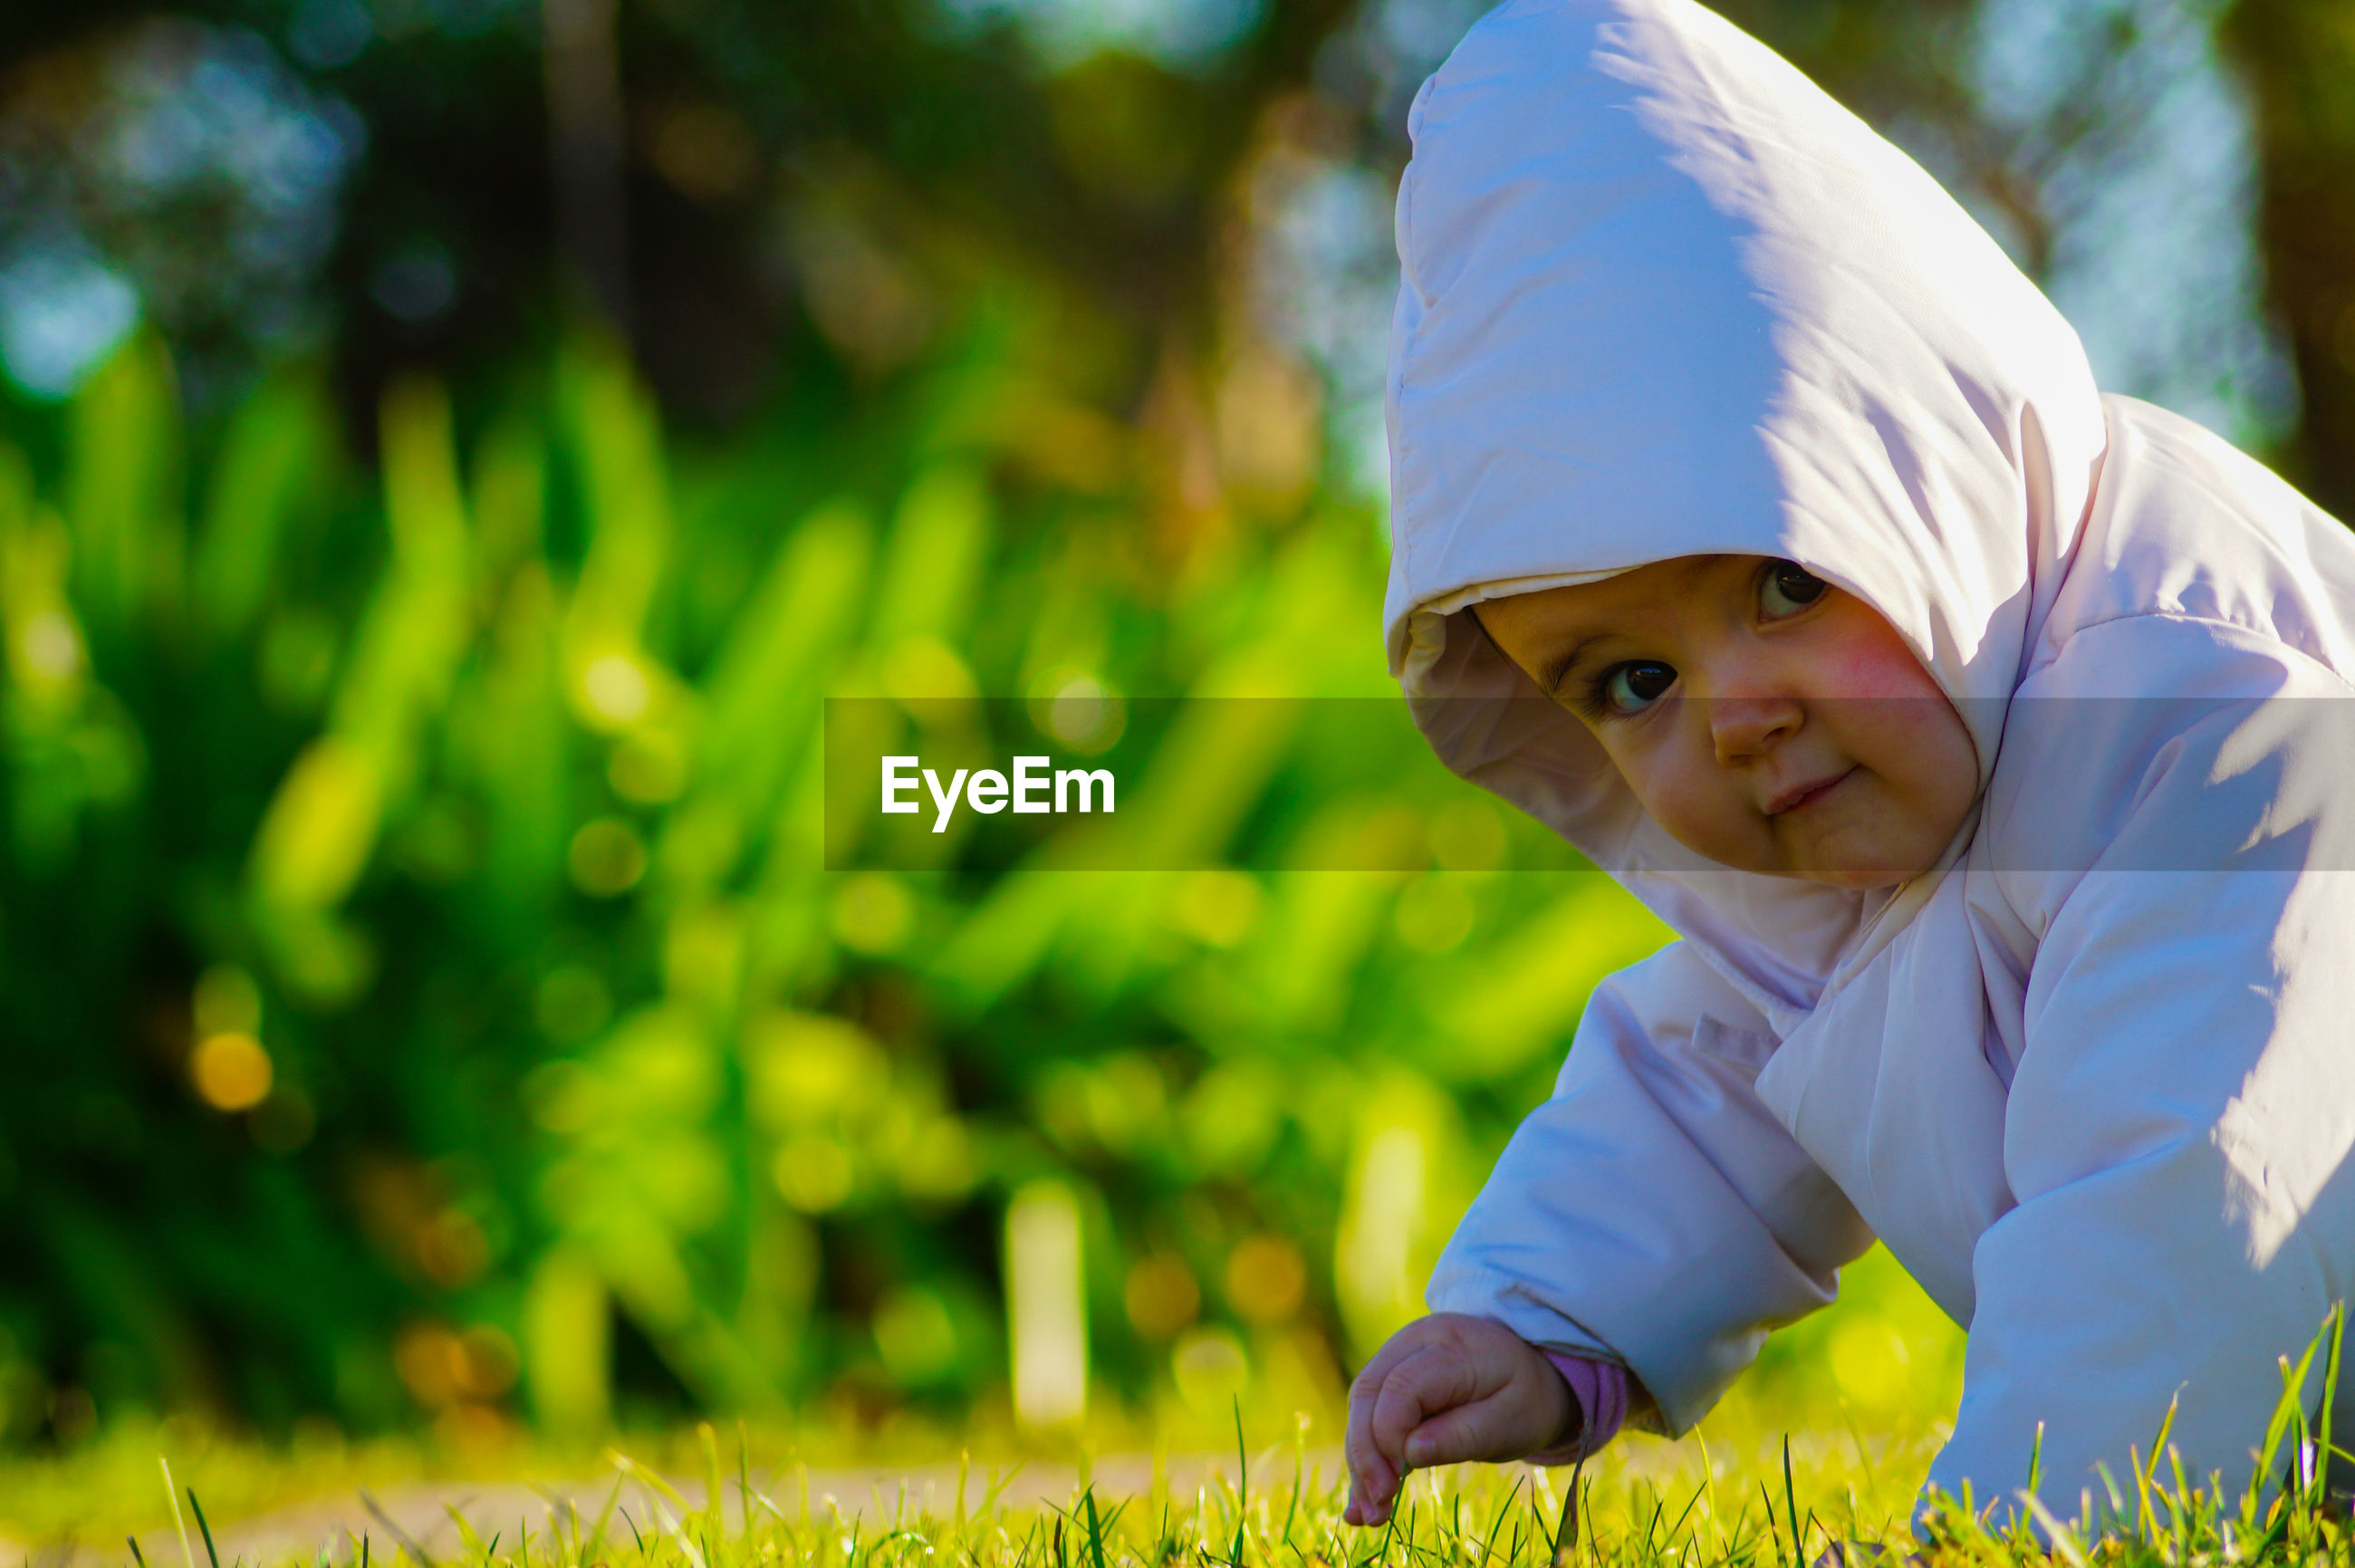 Portrait of baby on grass